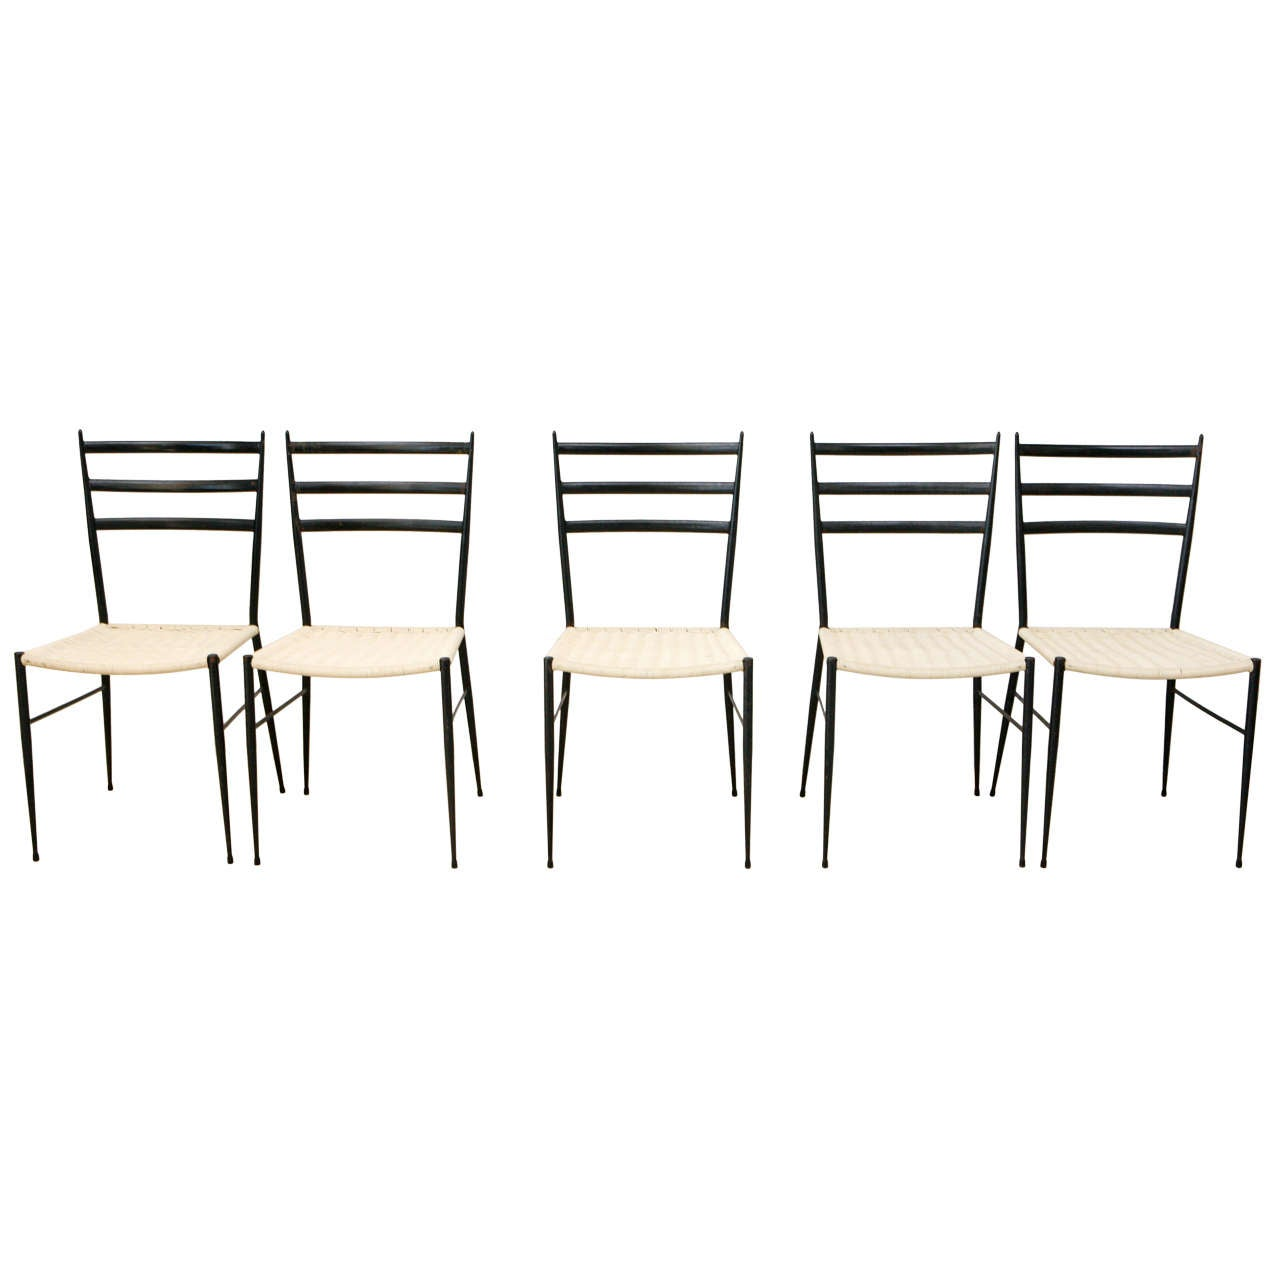 Set Of 12 Superleggera Chairs In The Style Of Gio Ponti 1